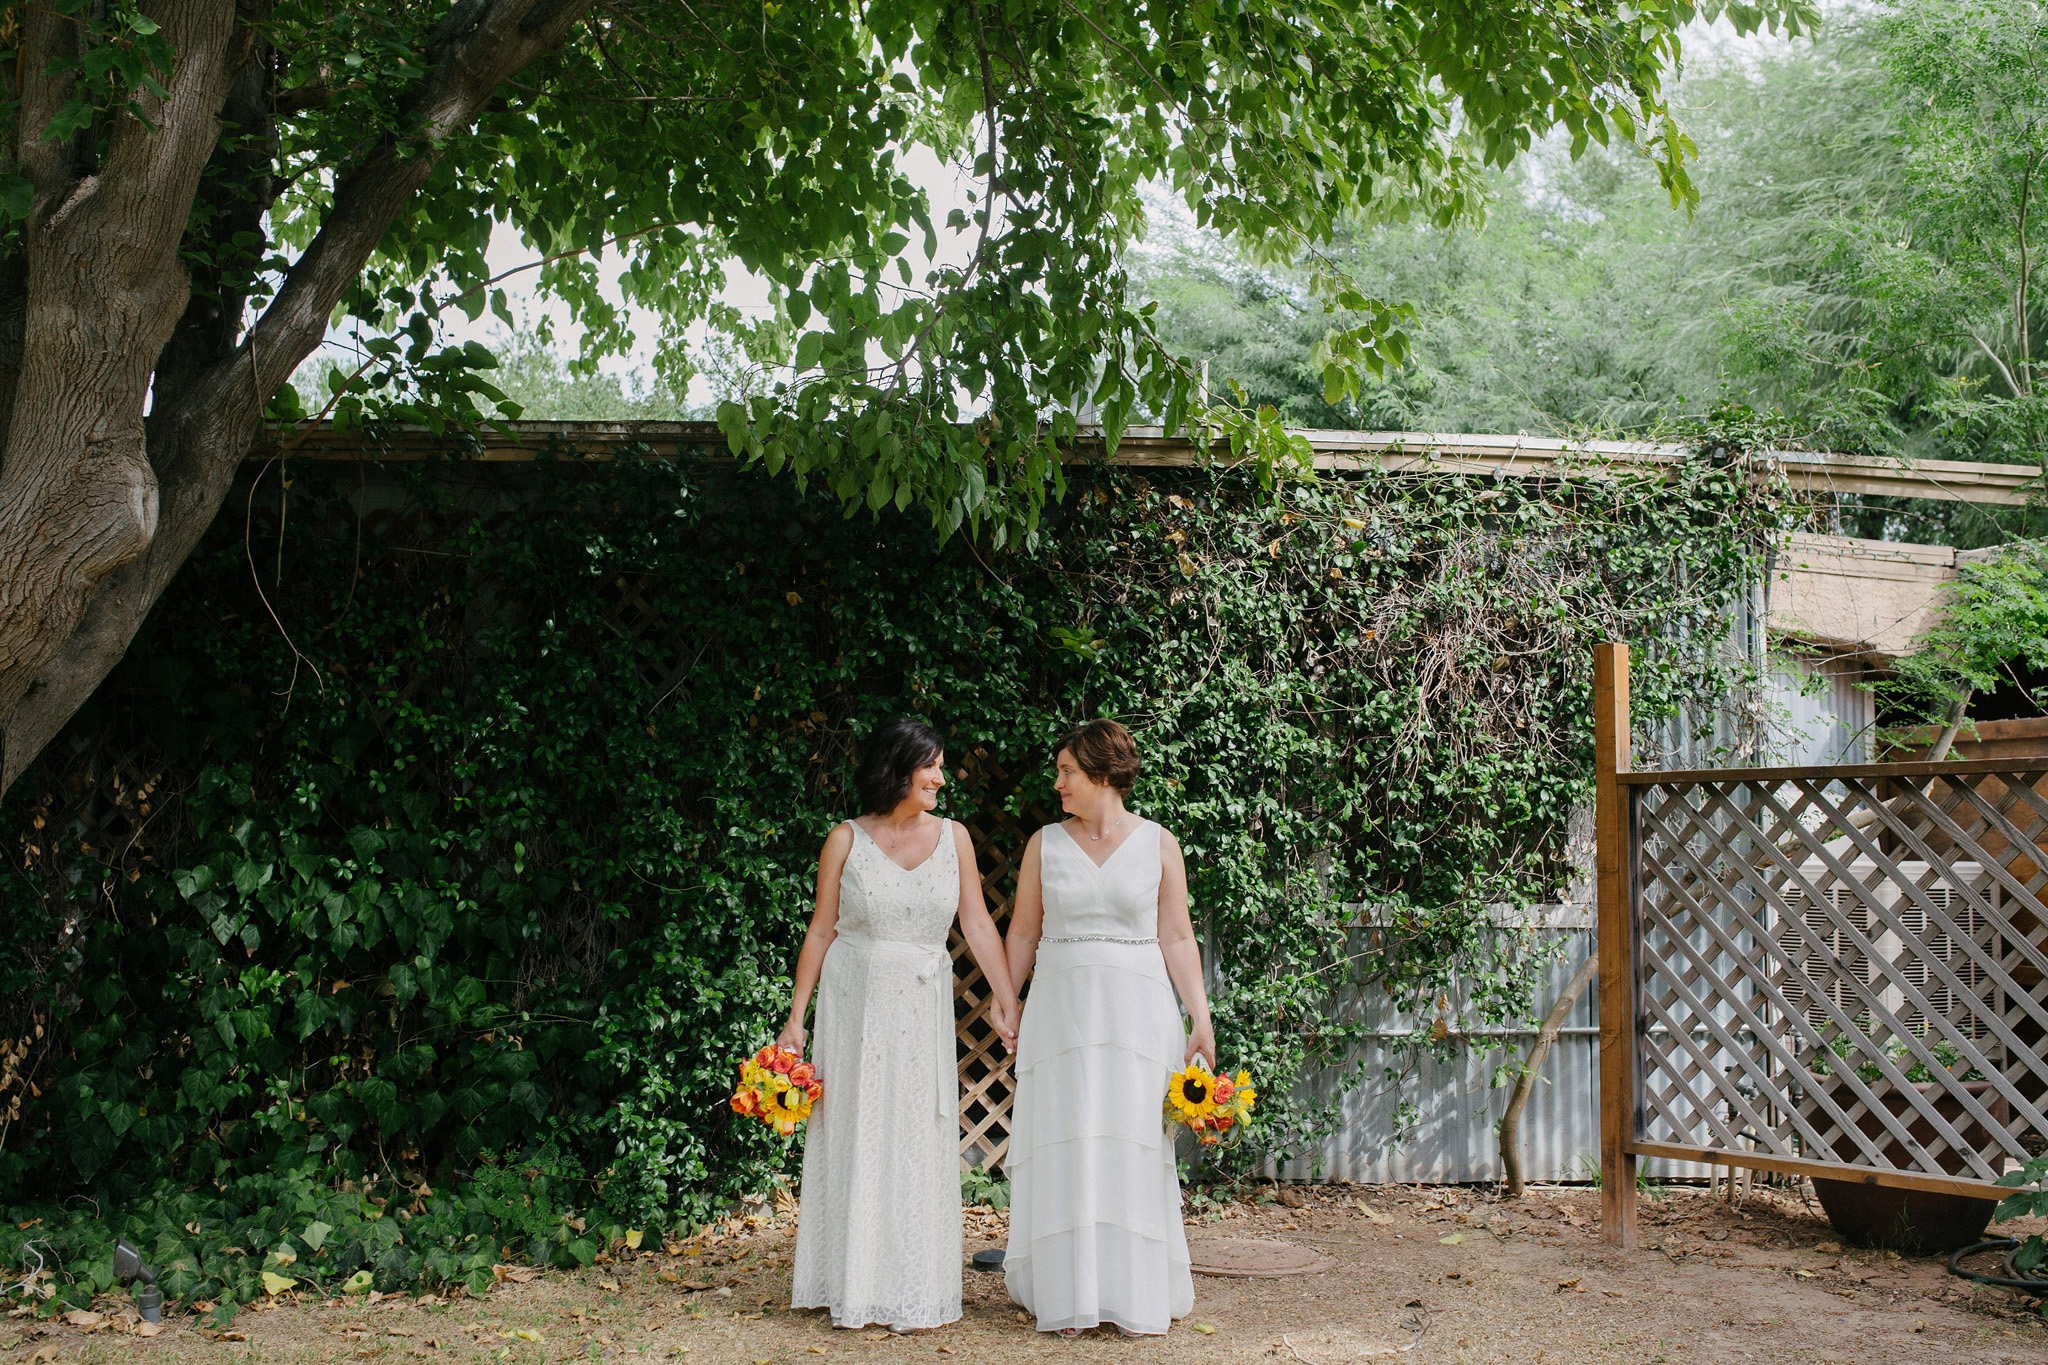 LGBT friendly Arizona documentary wedding photographer